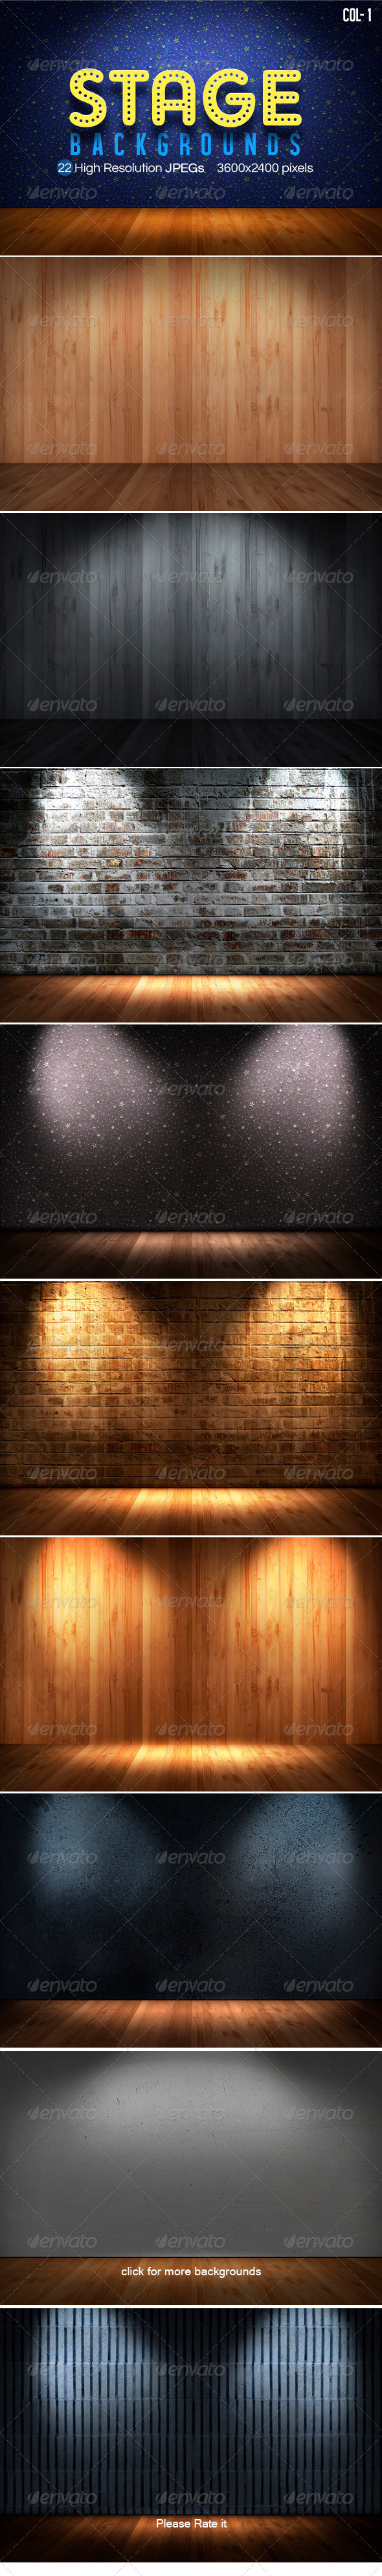 Stage Backgrounds Col1 - 3D Backgrounds